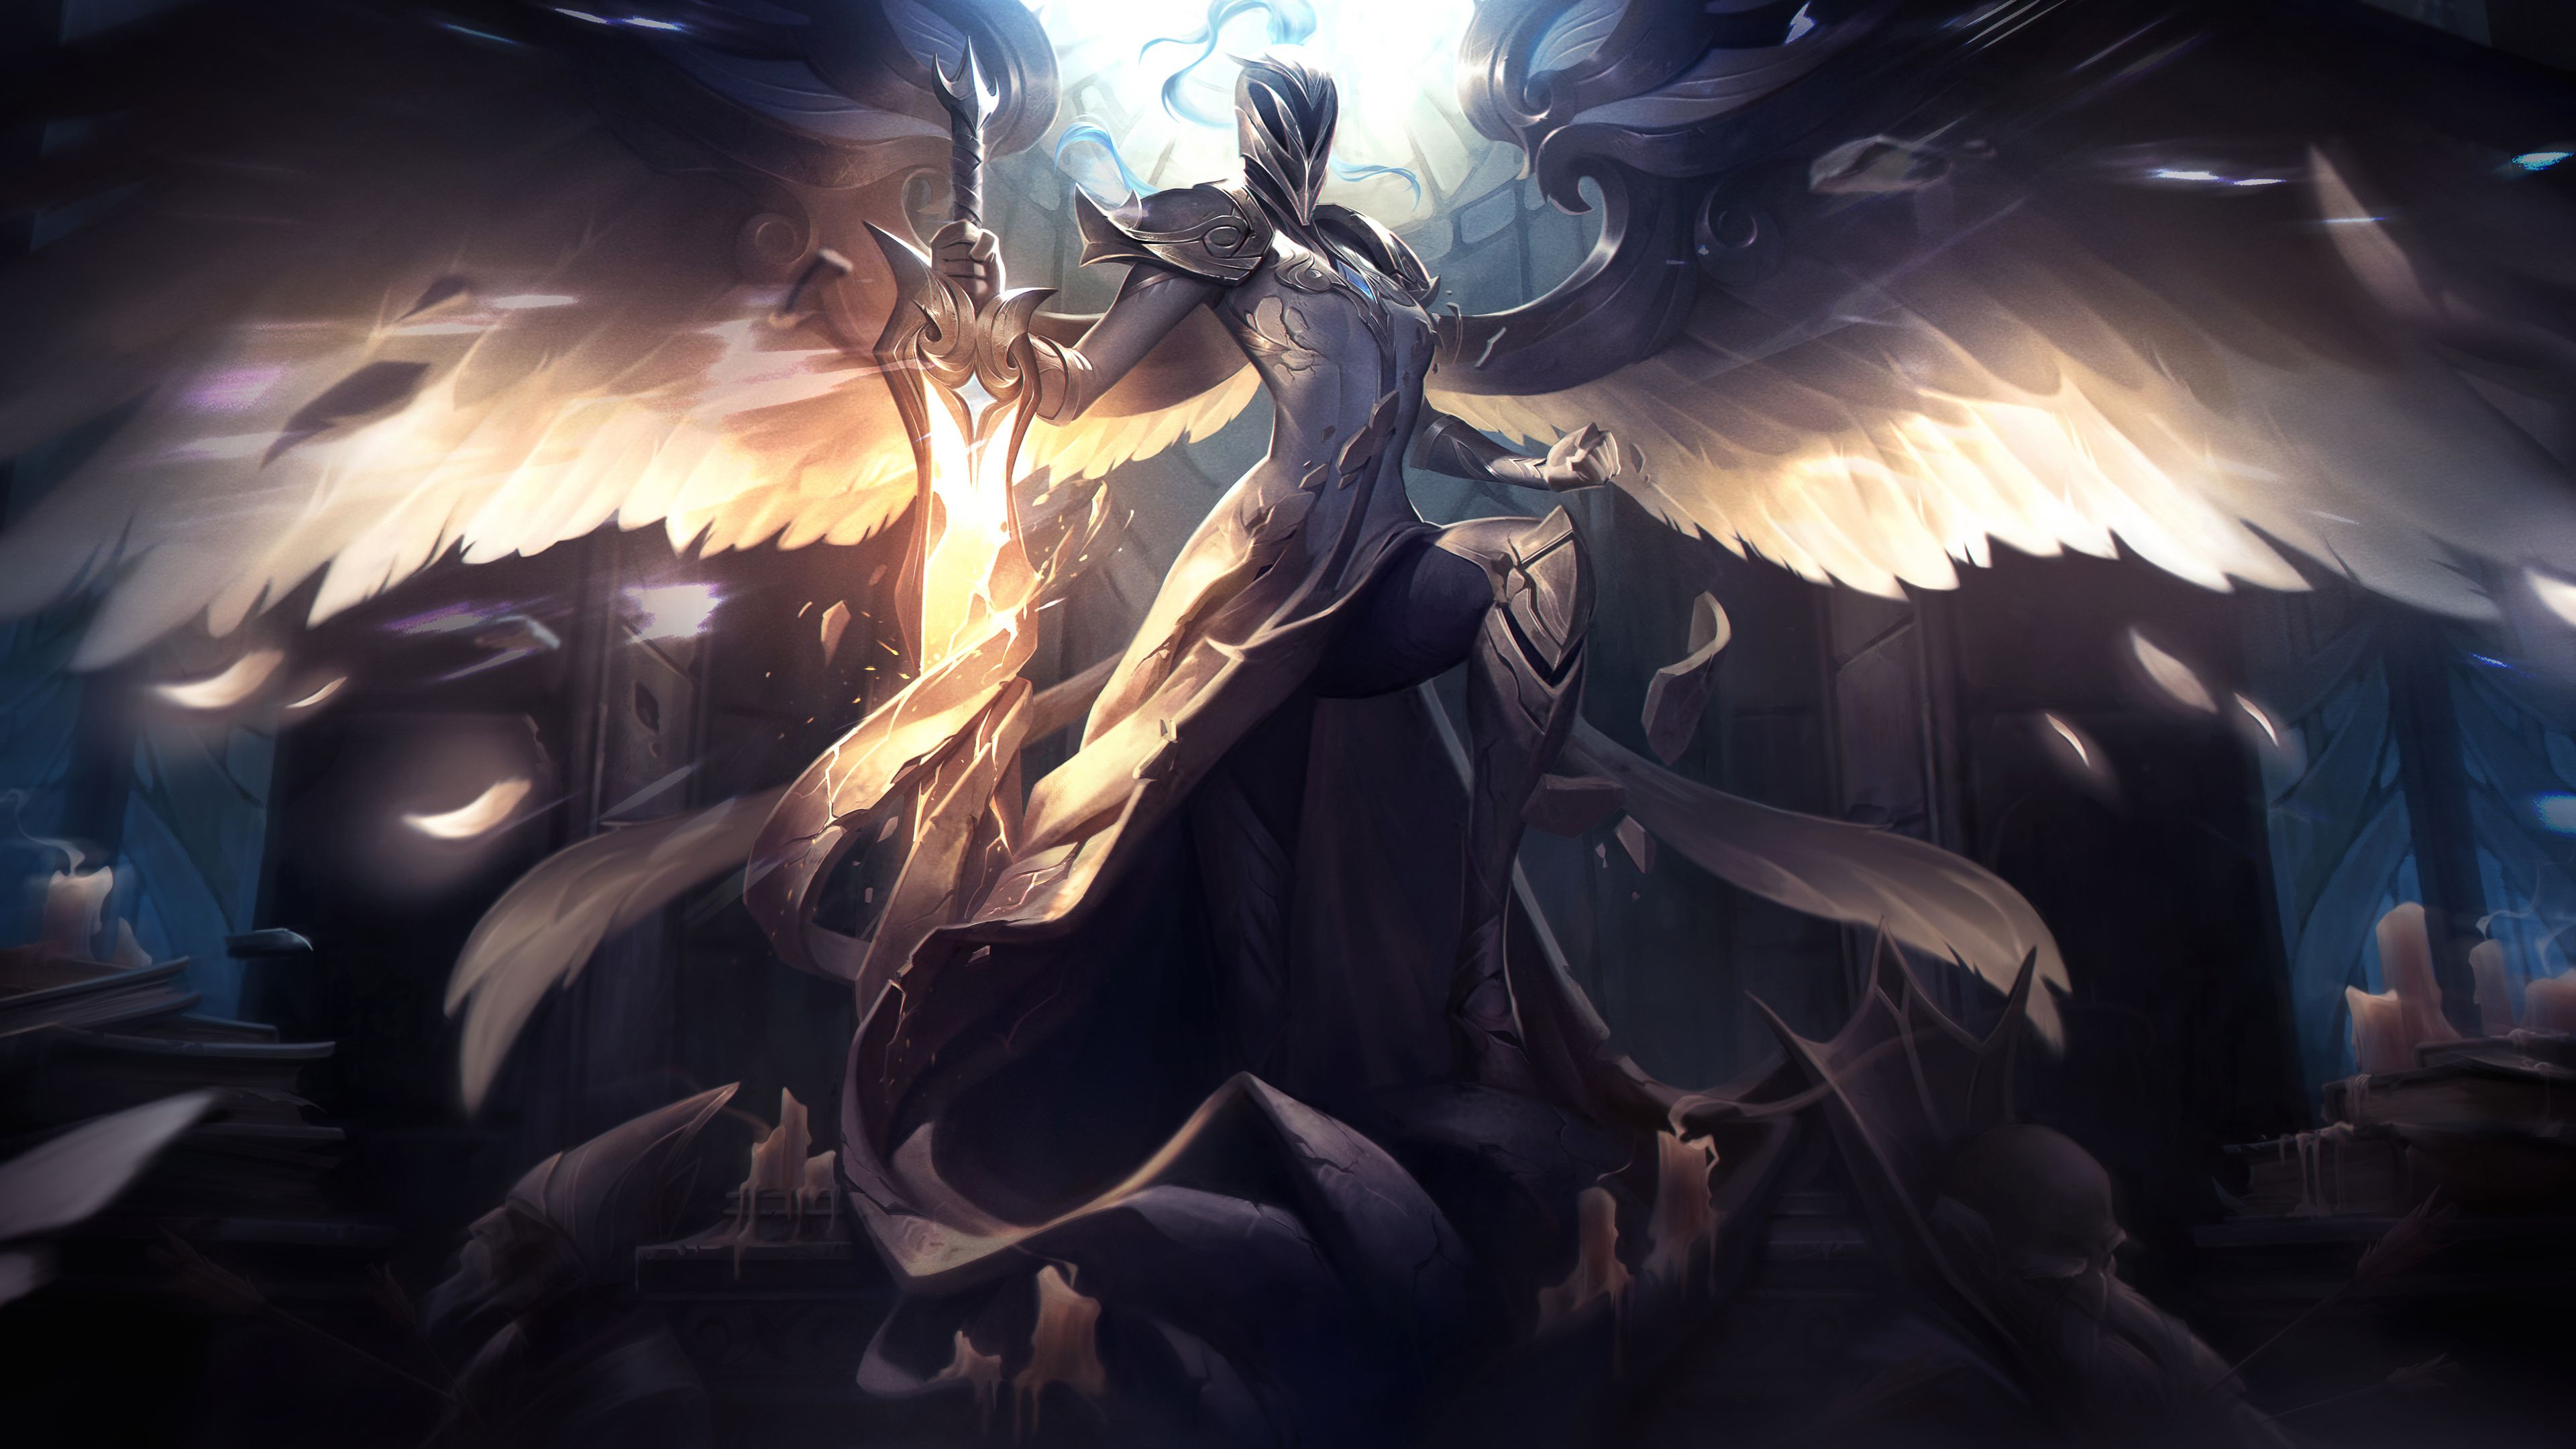 Aether Wing Kayle League Of Legends 4k League Of Legends Wallpapers Hd Wallpapers Games Wallpapers 5k Wallpapers 4k Wallpapers League Of Legends League Art Aether wing kayle league of legends